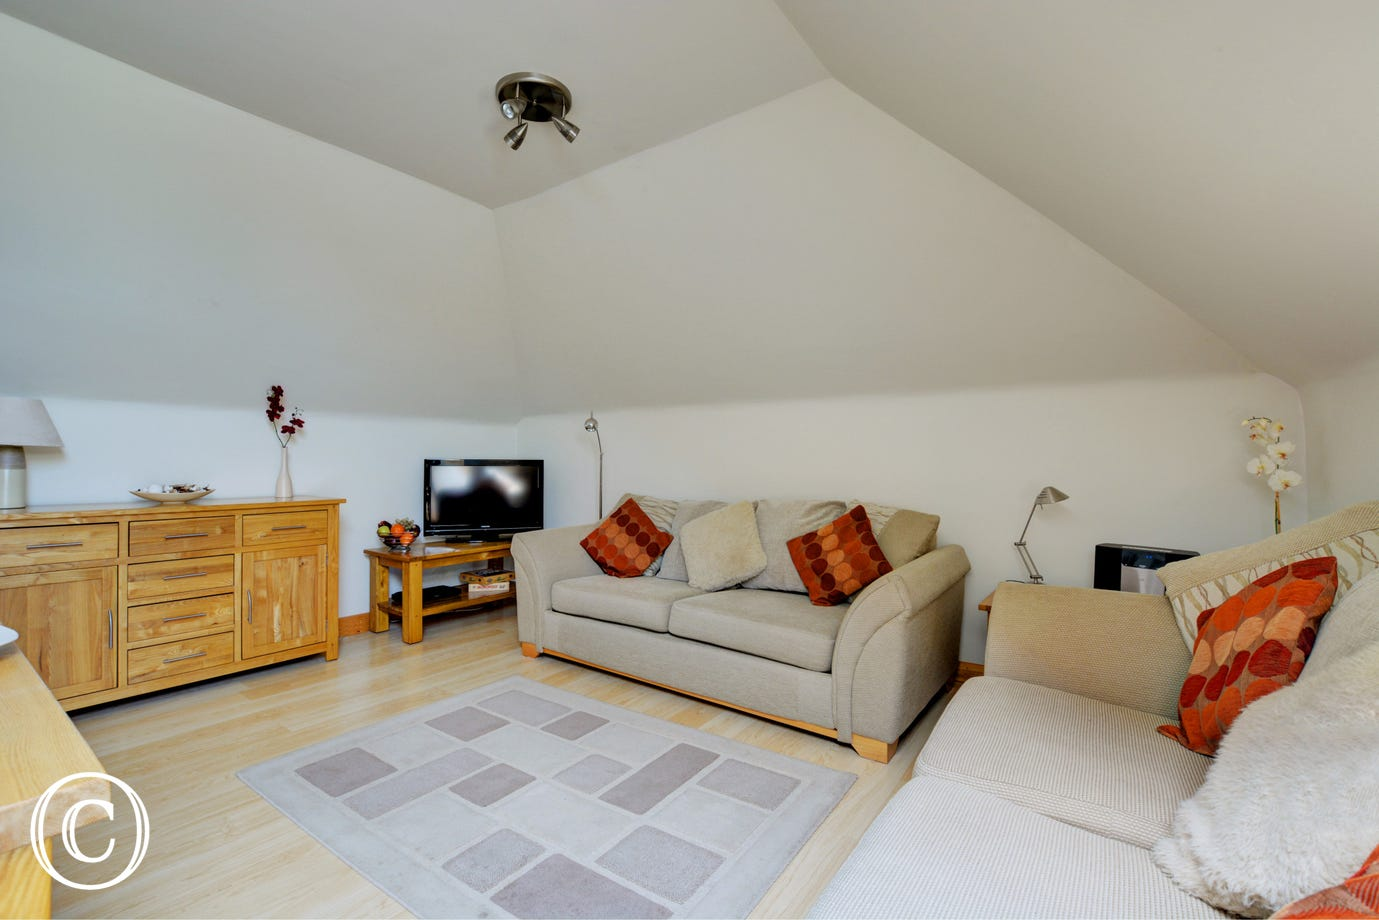 The spacious living room has comfortable seating and a TV